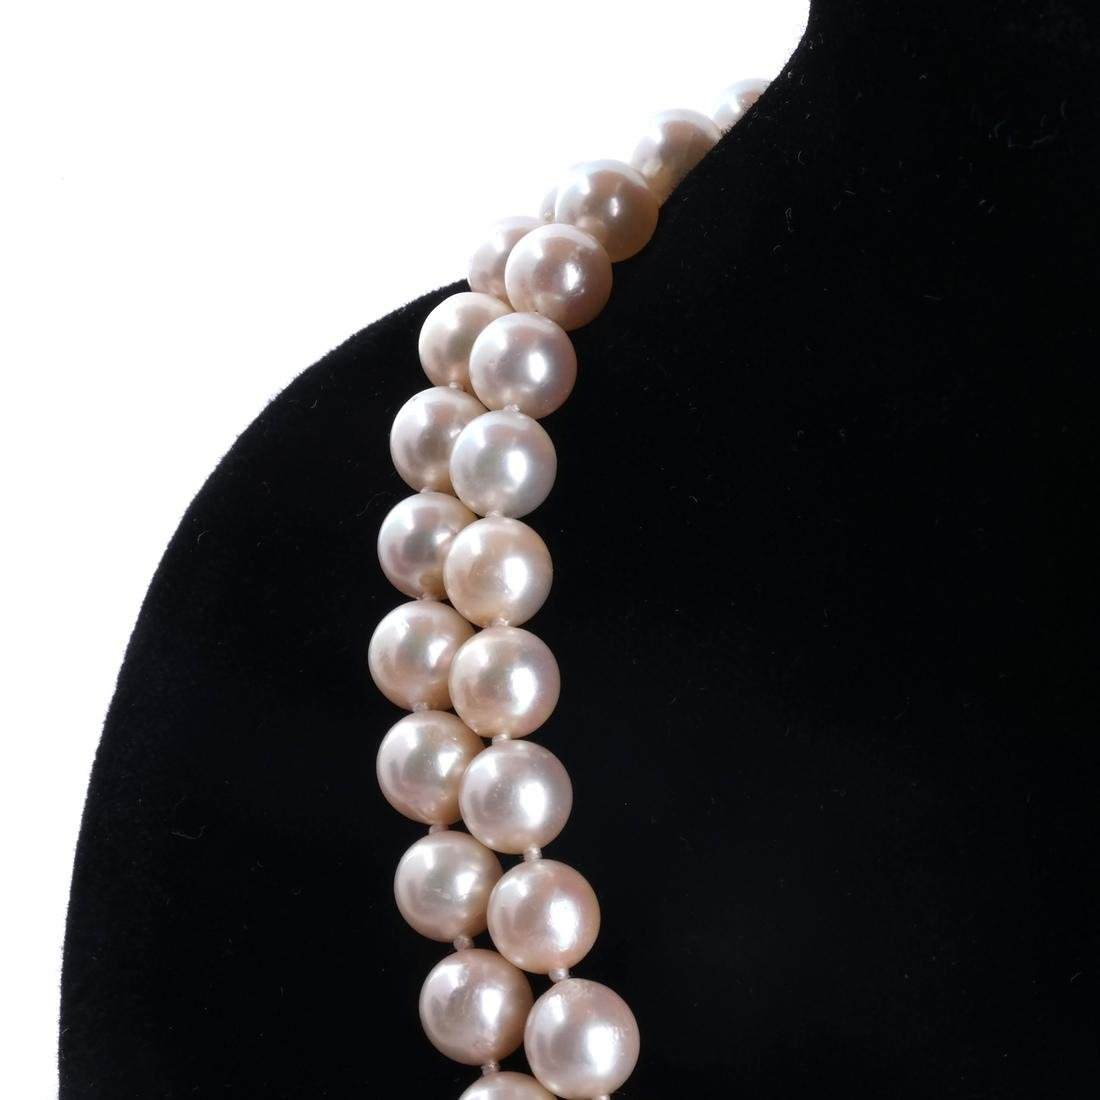 Two-Strand Pearl Necklace, 18k Clasp - 2